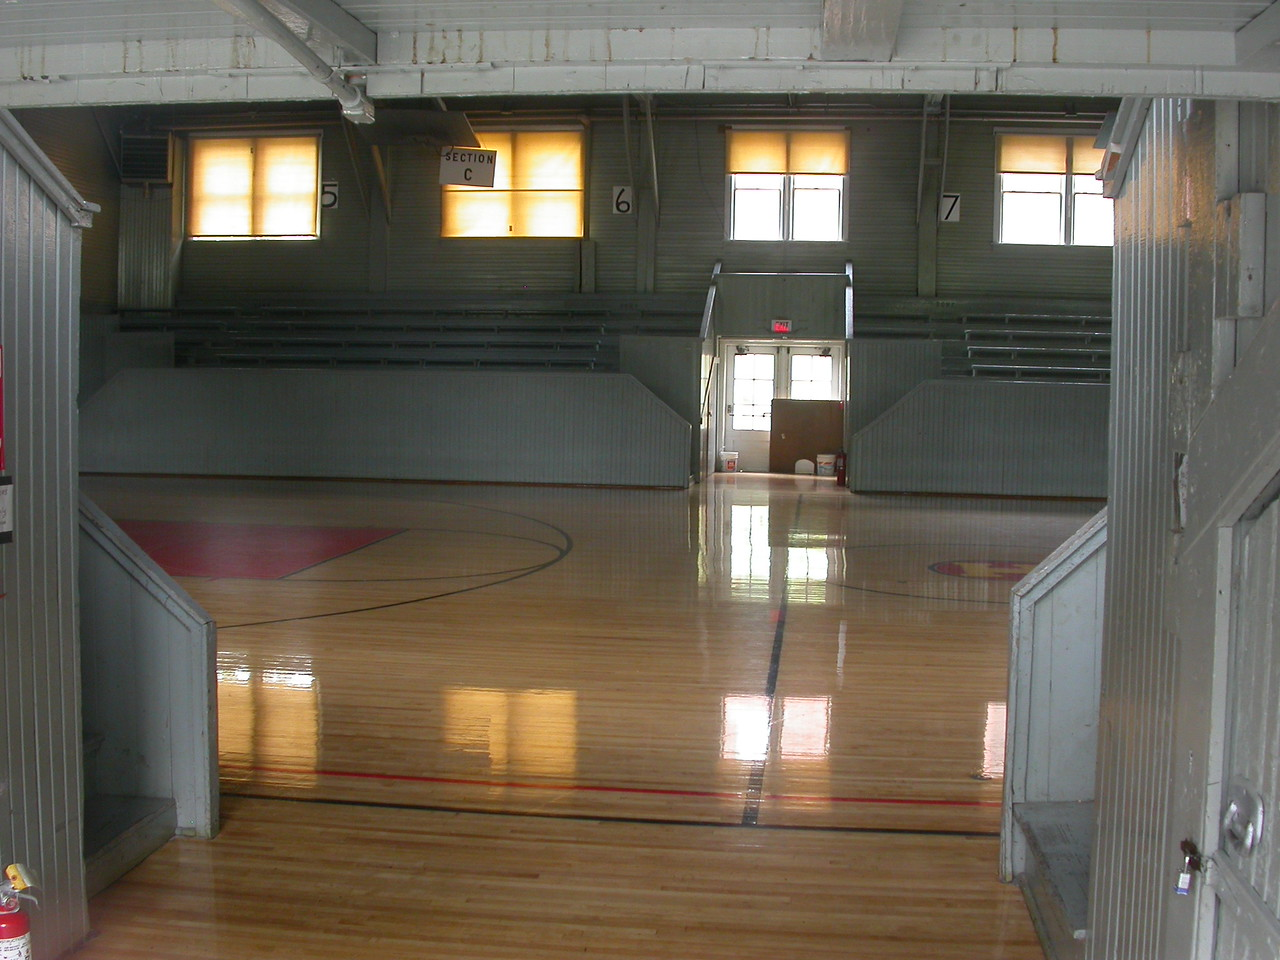 """This is the gym used as Home Court in the movie """"Hoosiers"""".  Located in Knightstown, Indiana.  Photographed May 5, 2004."""